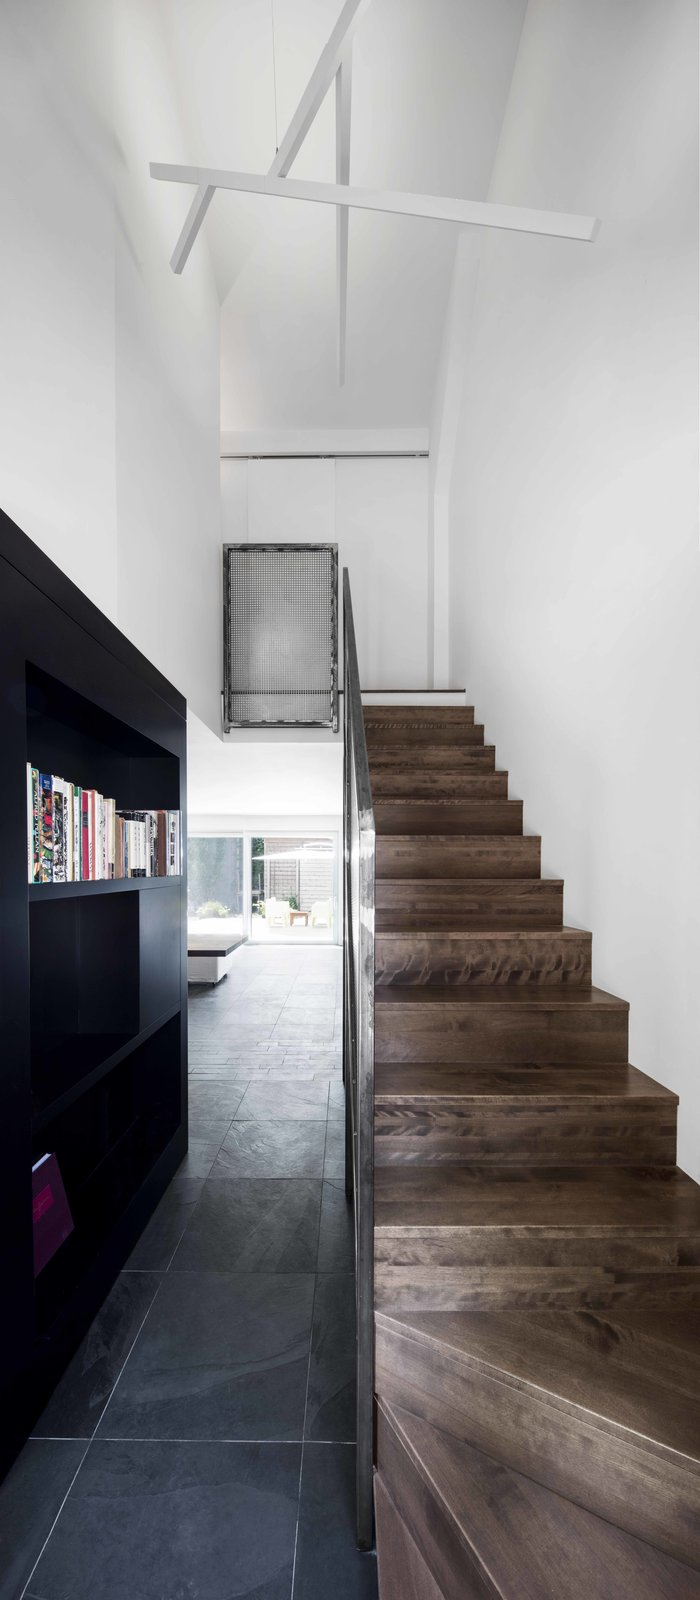 The staircase's steel guardrail and the custom black bookshelf create a link between the kitchen, the living space, and the entryway. Tagged: Staircase, Wood Tread, and Metal Railing.  Best Photos from A Monochromatic Renovation for a 19th-Century Montreal Home